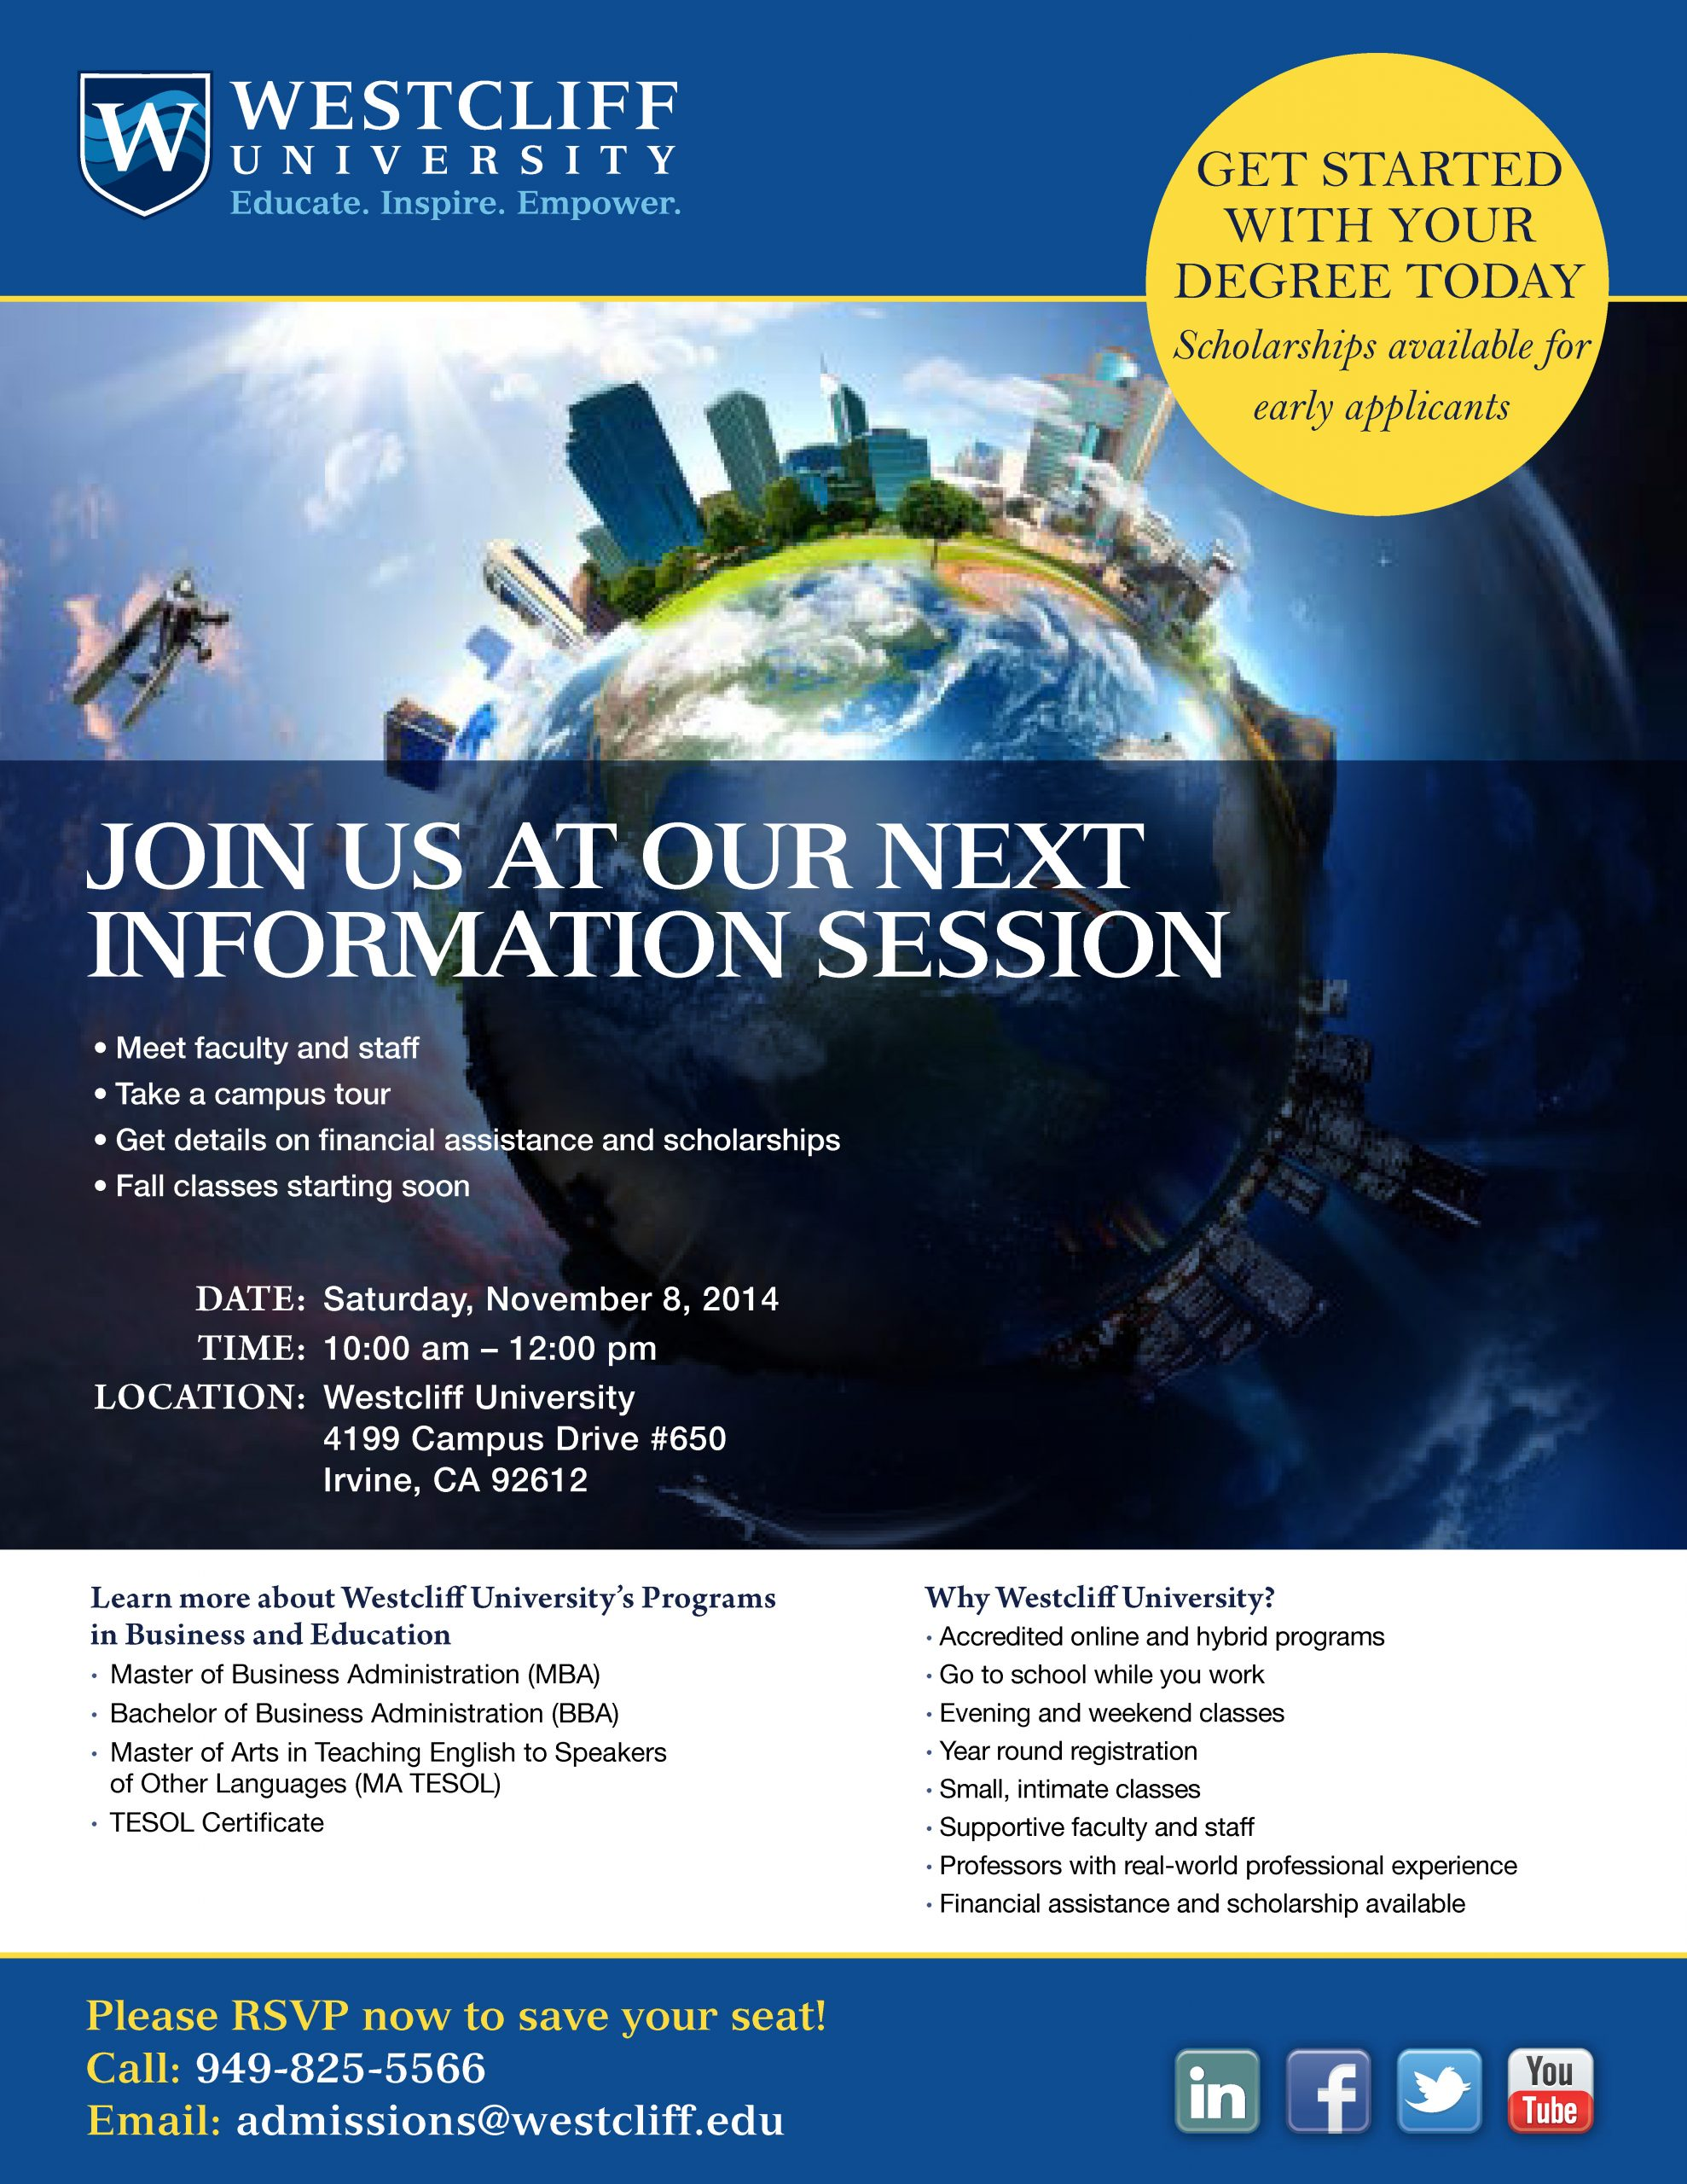 Information Session on Saturday, 11/08/14 10AM-12PM